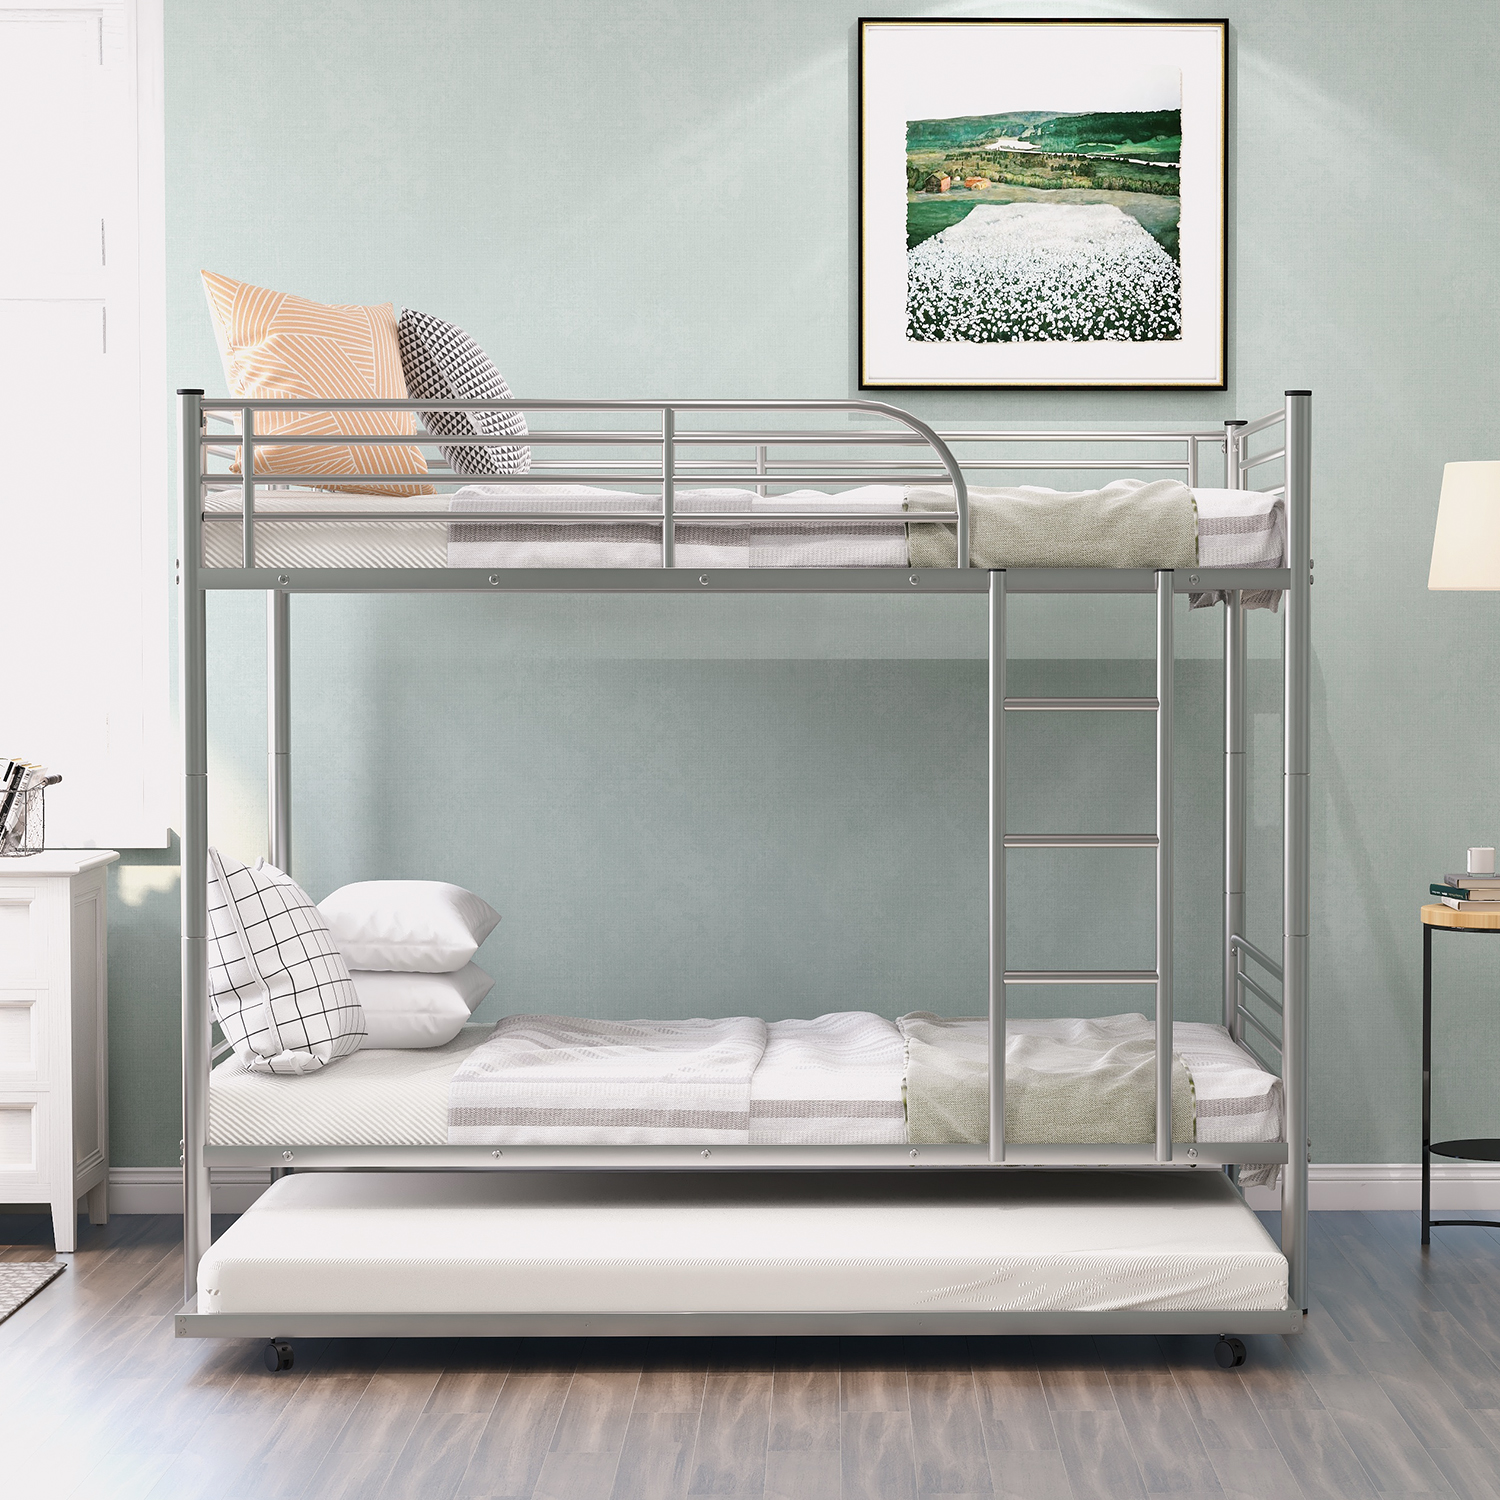 Twin Over Twin Bunk Bed With Trundle Metal Twin Bed With Safety Guard Rail And Ladders Space Saving Design Sleeping Bedroom Bunk Bed For Boys Girls Kids Young Teens And Adults Easy Assembly